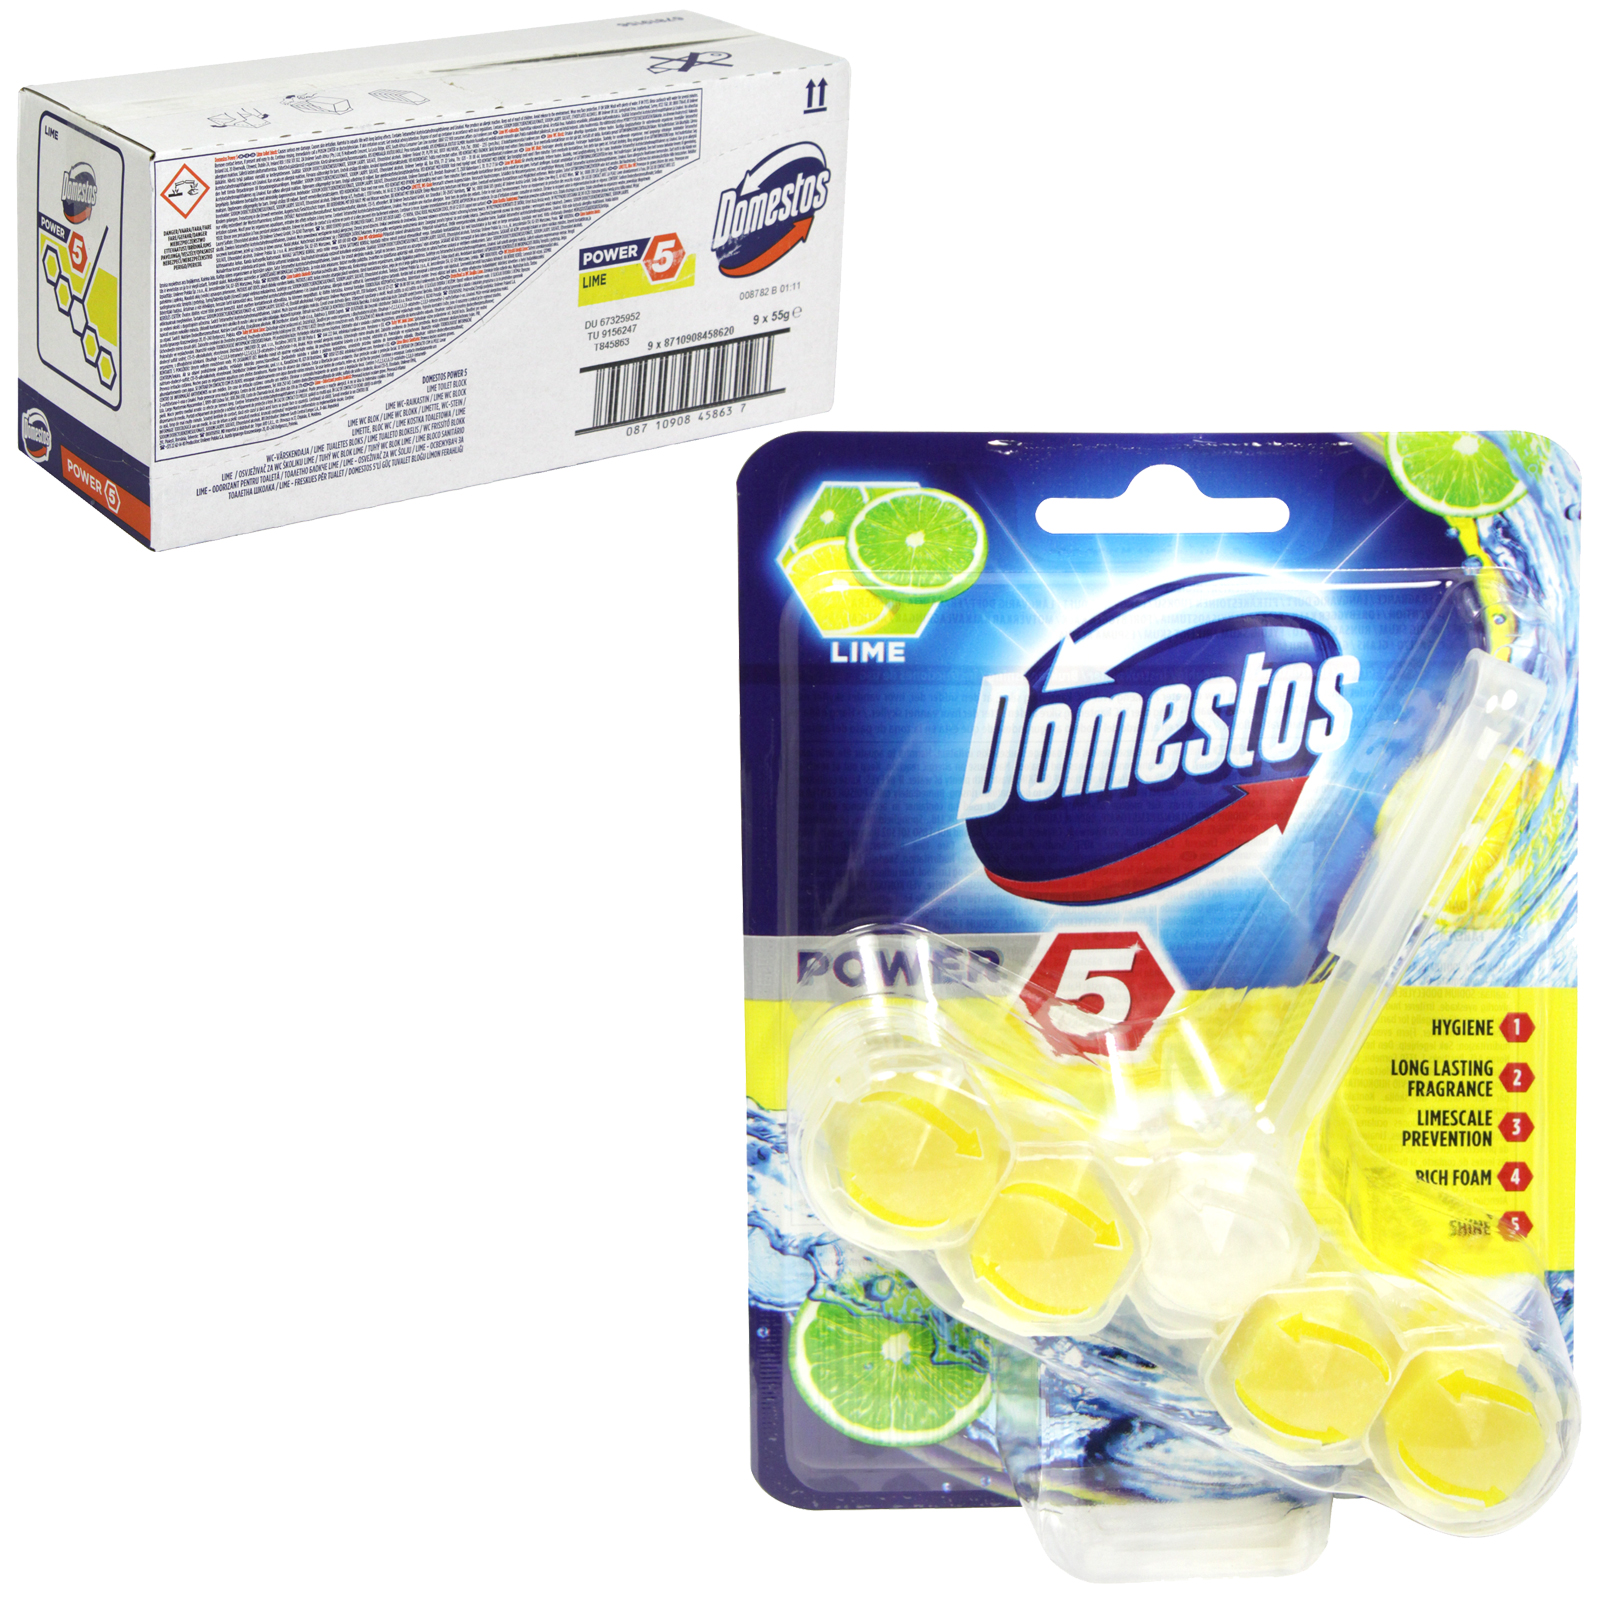 DOMESTOS POWER 5 RIMBLOCK 55GM LIME X9